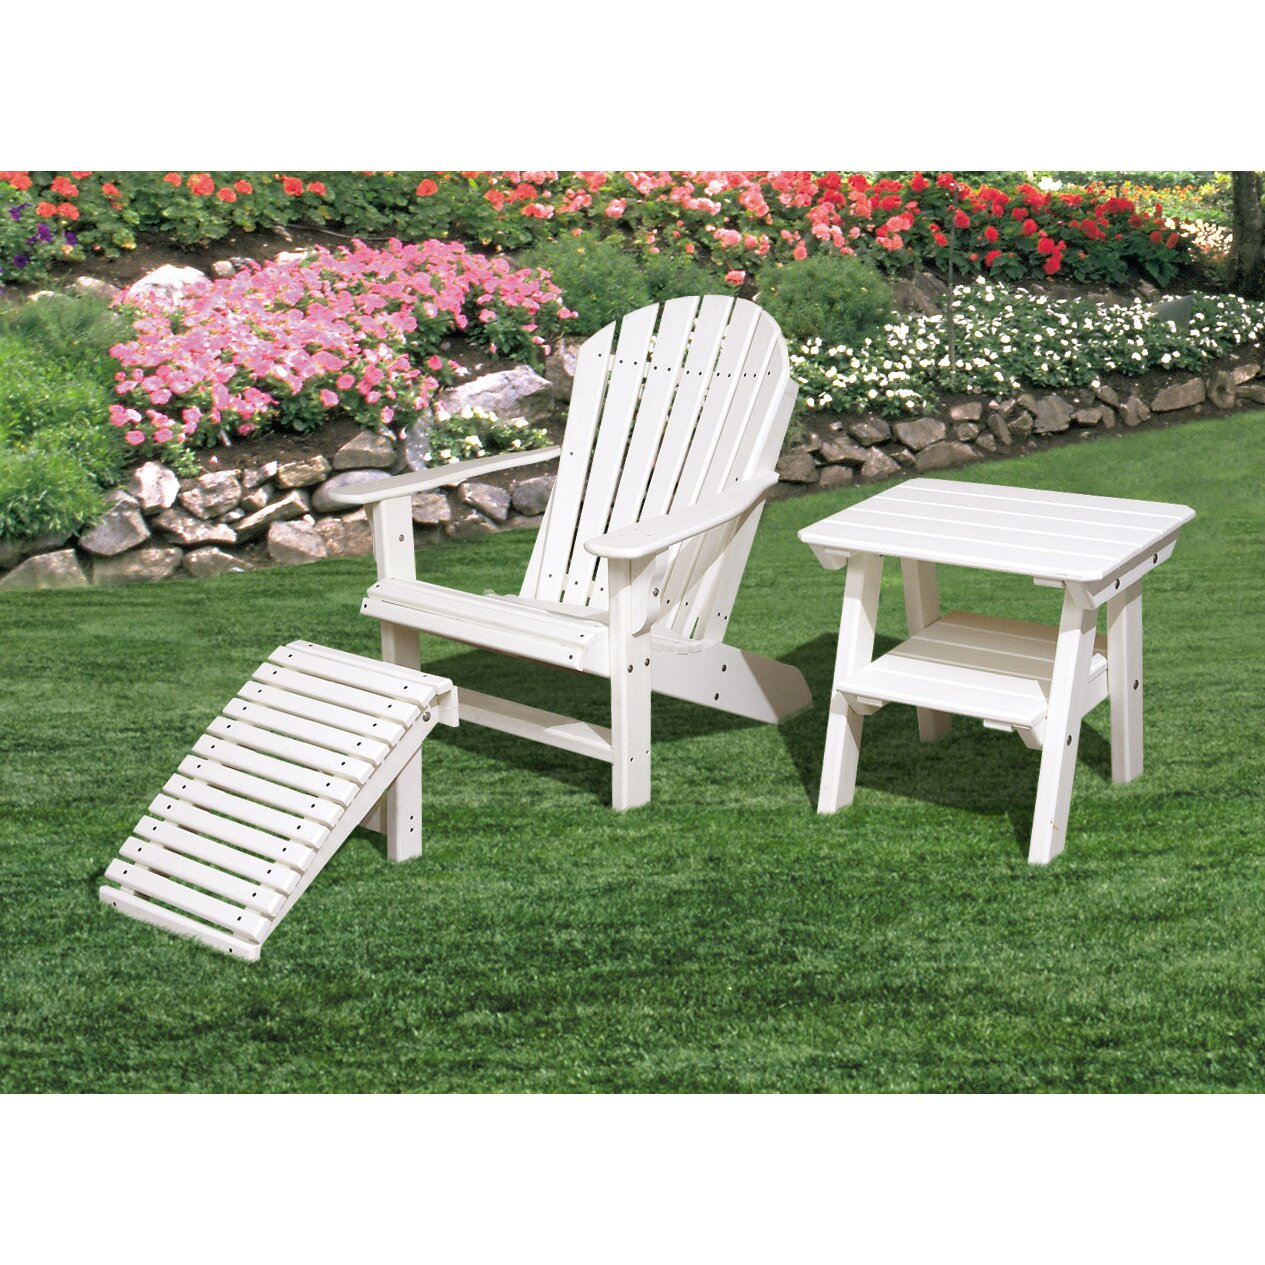 Little Cottage Company Adirondack Chair And Footstool Set Reviews Way